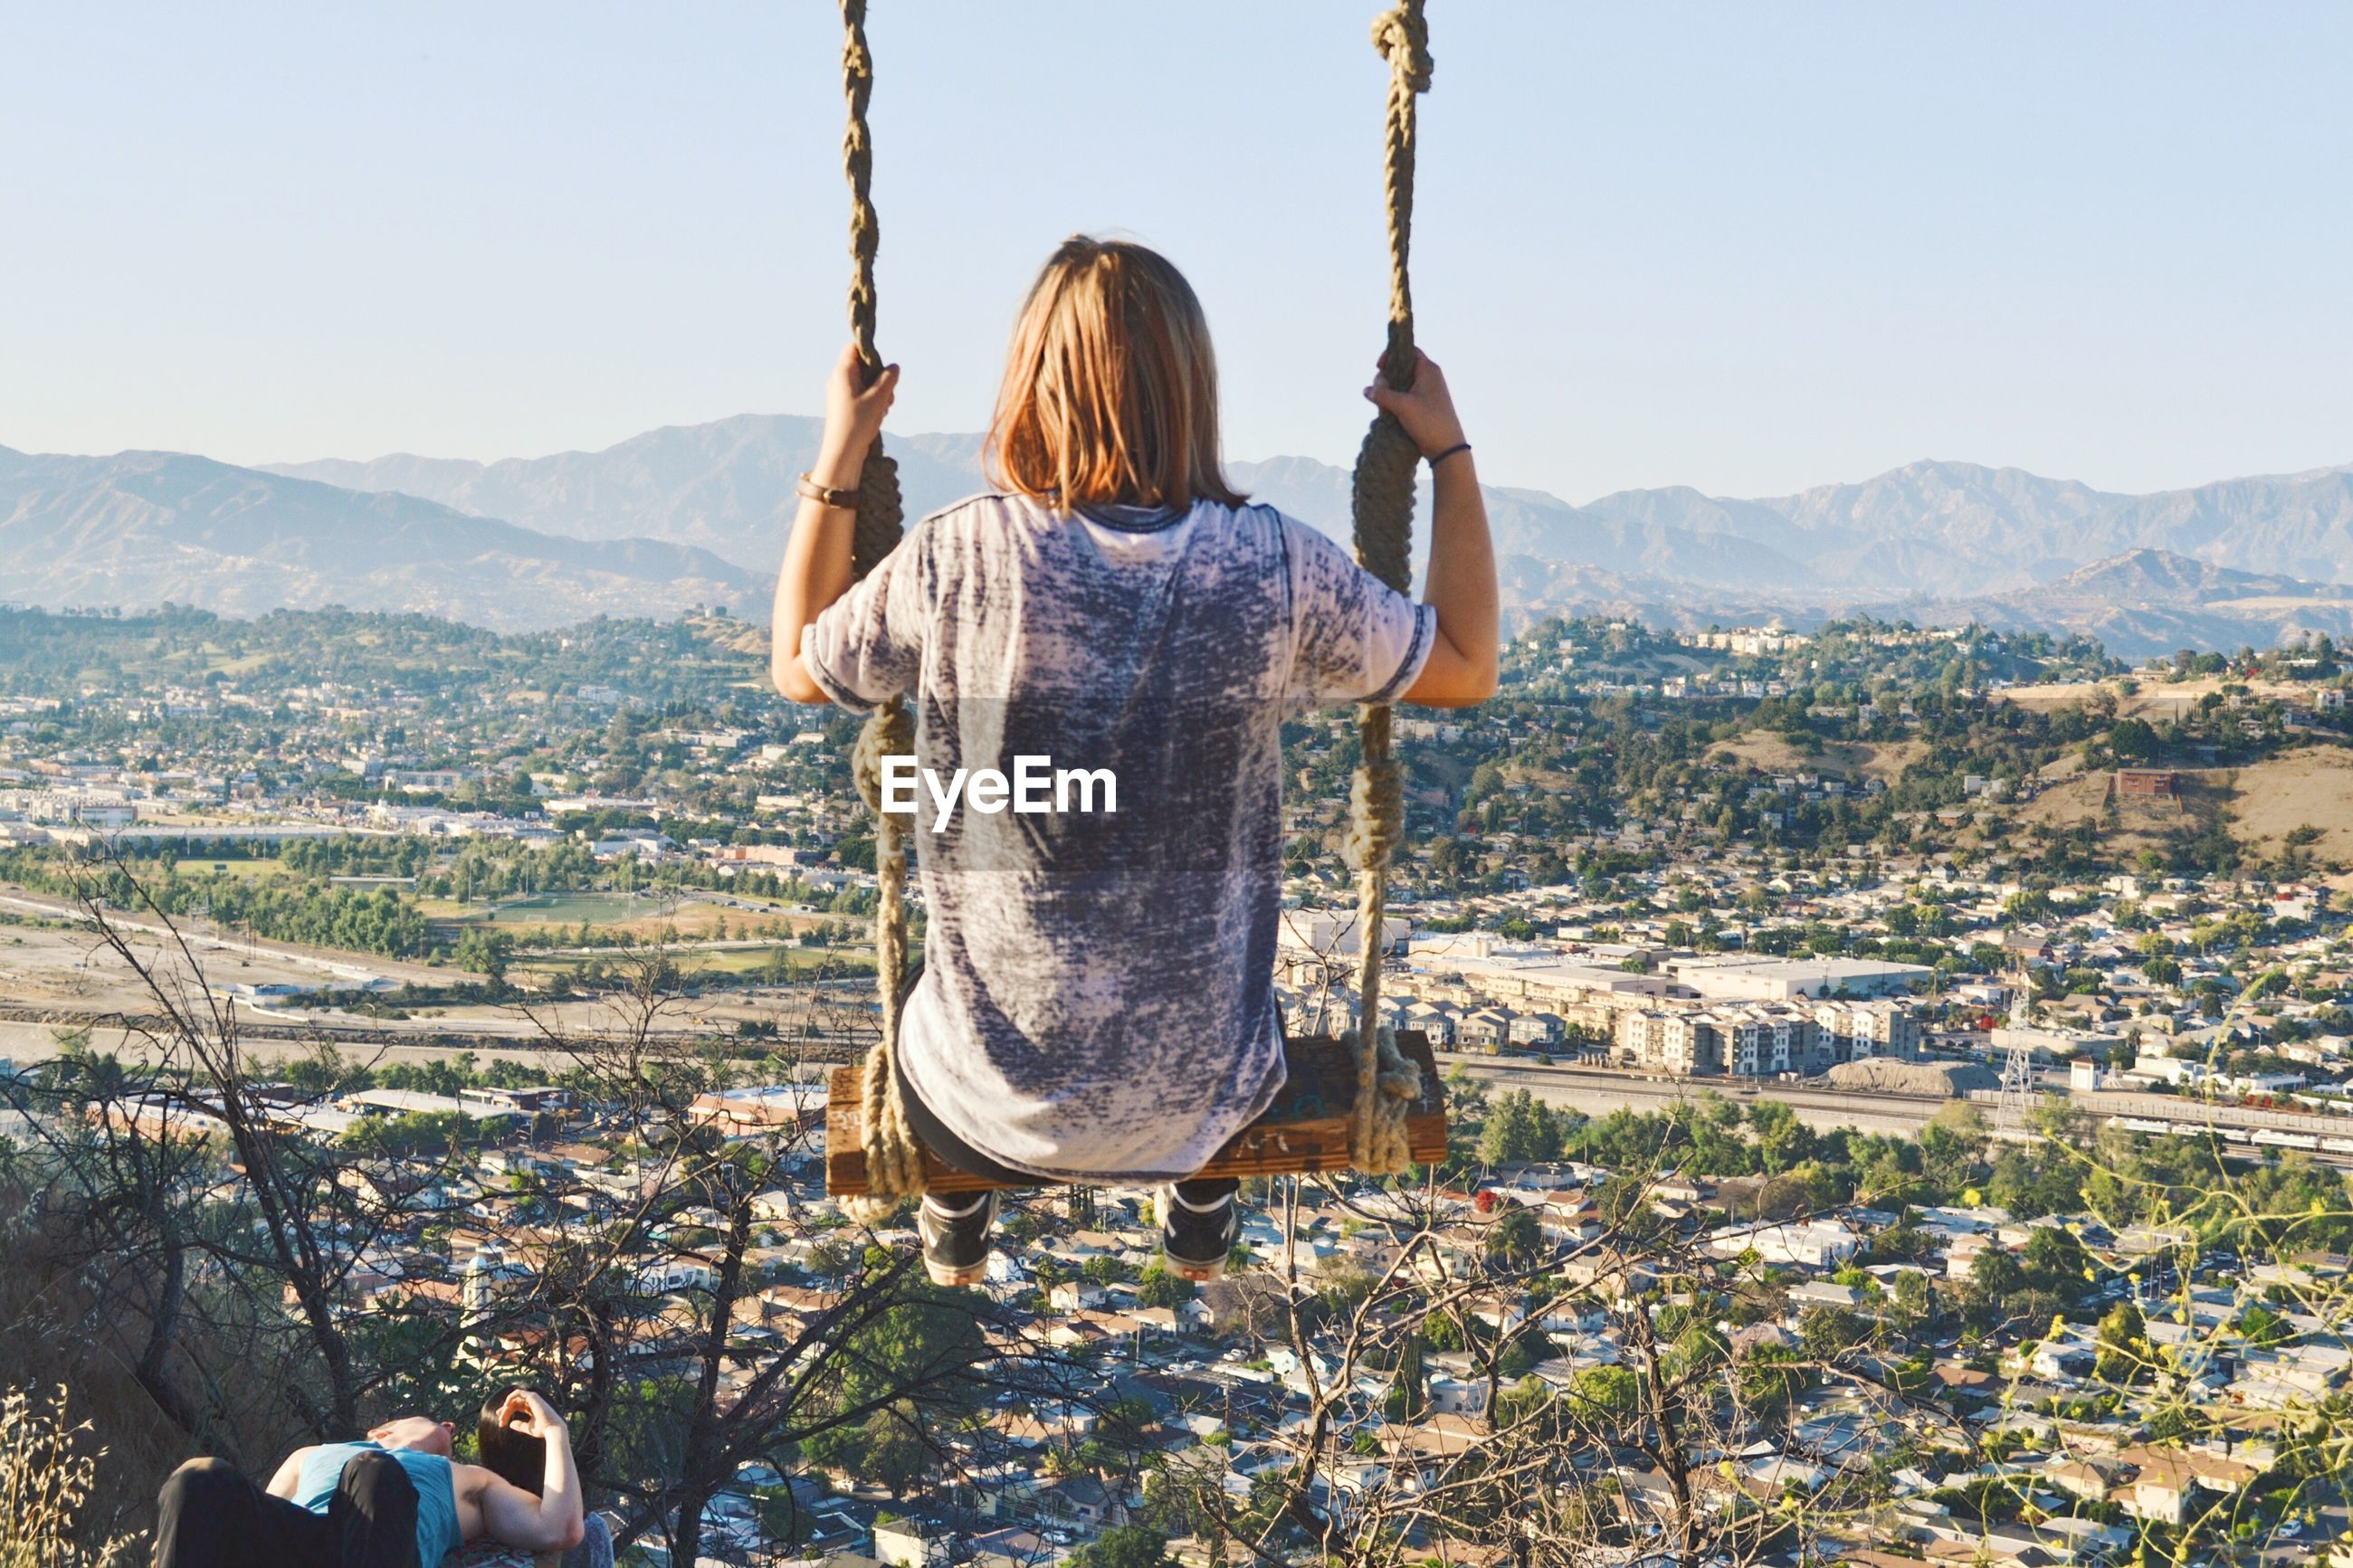 Rear view of woman sitting on swing against cityscape